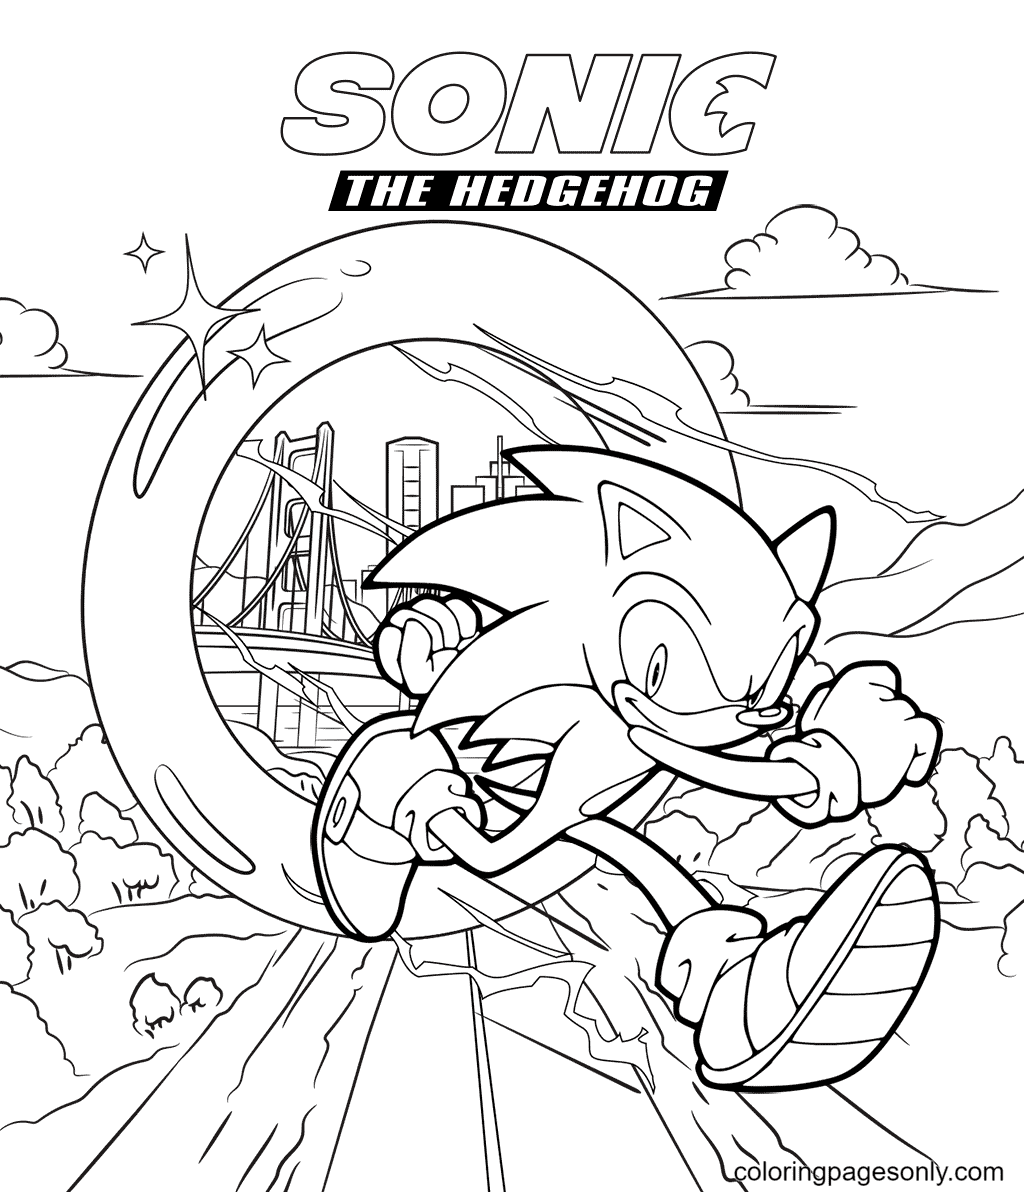 Naughty Sonic Coloring Page